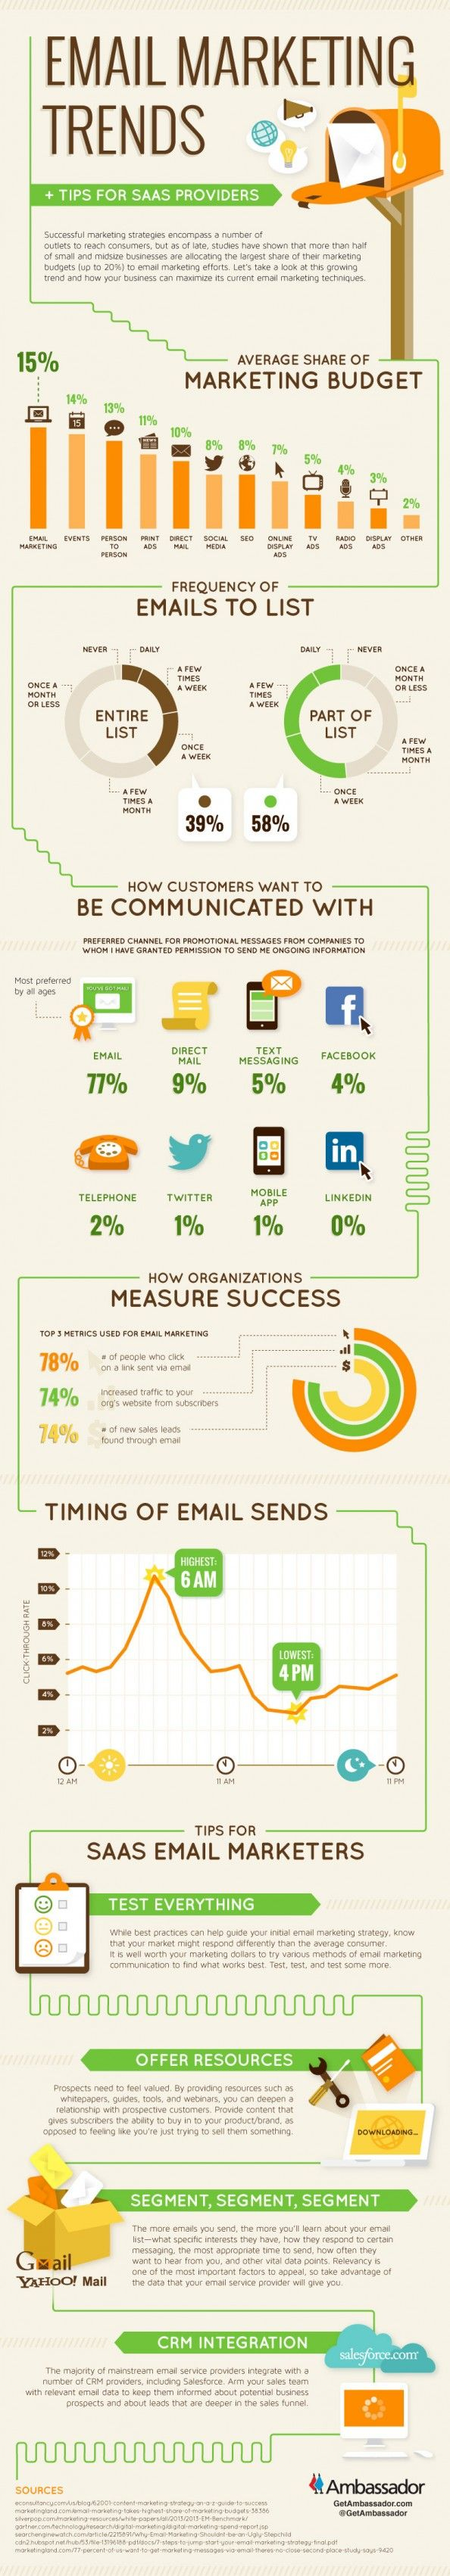 Email Marketing Trends Infographic #emailmarketing